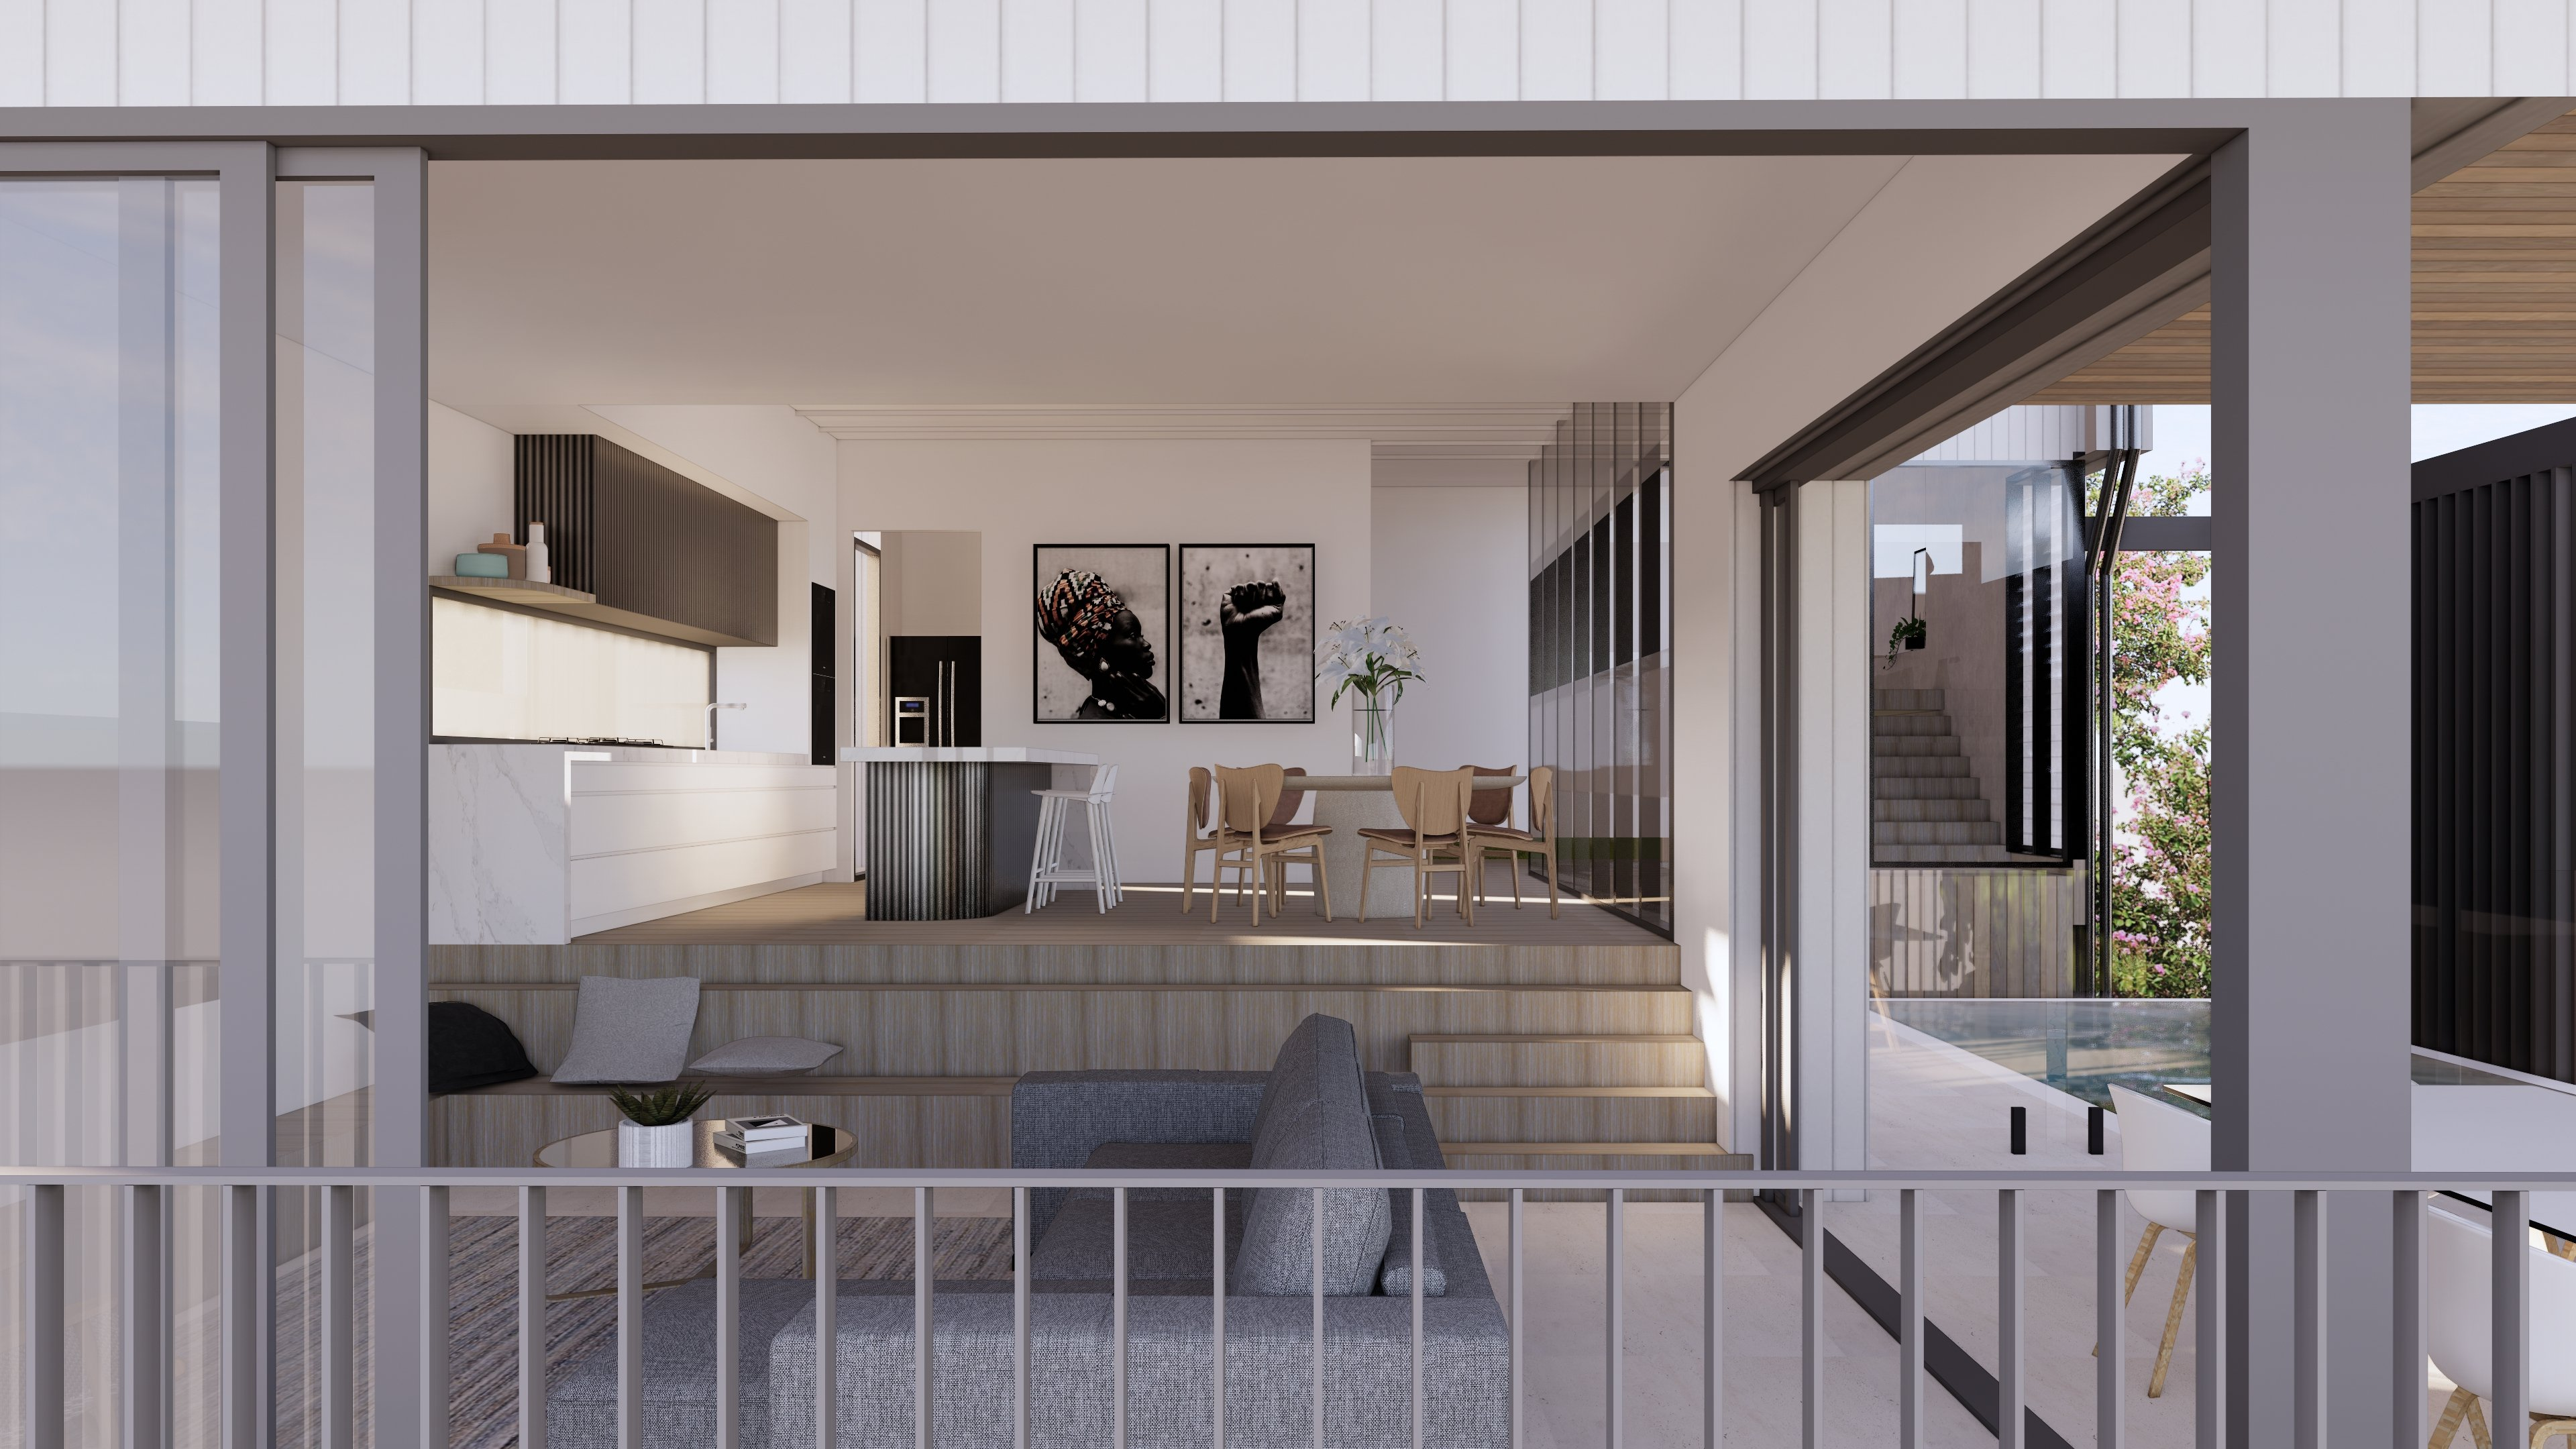 Plungie bringing architect and builder together